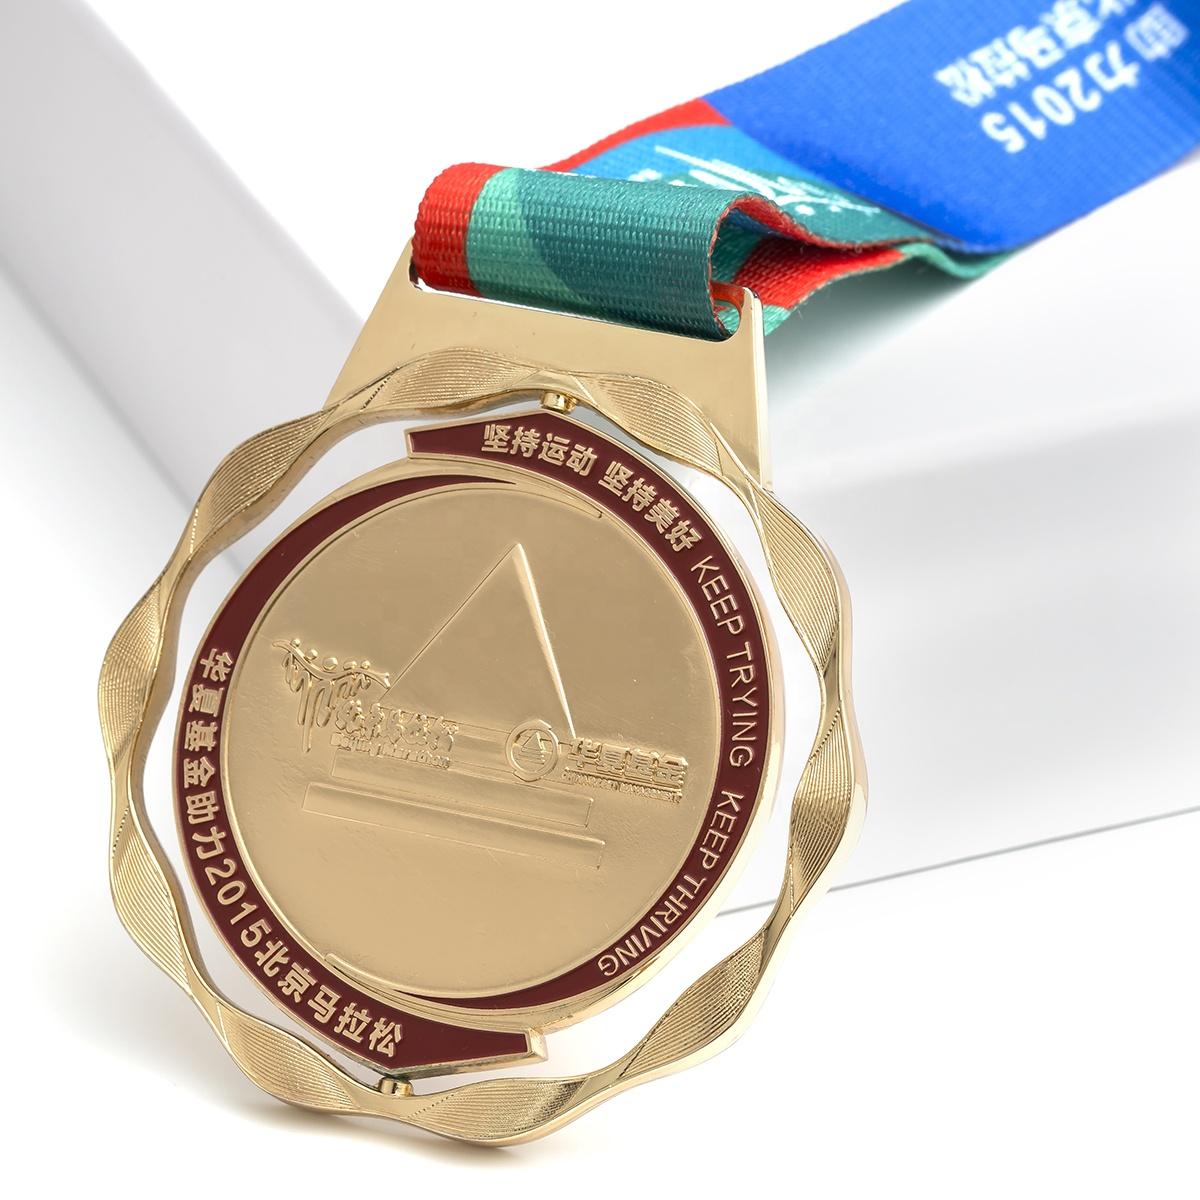 Wholesale gold zinc alloy marathon sports medal with best quality fiesta trophy blank custom 3d metal medal